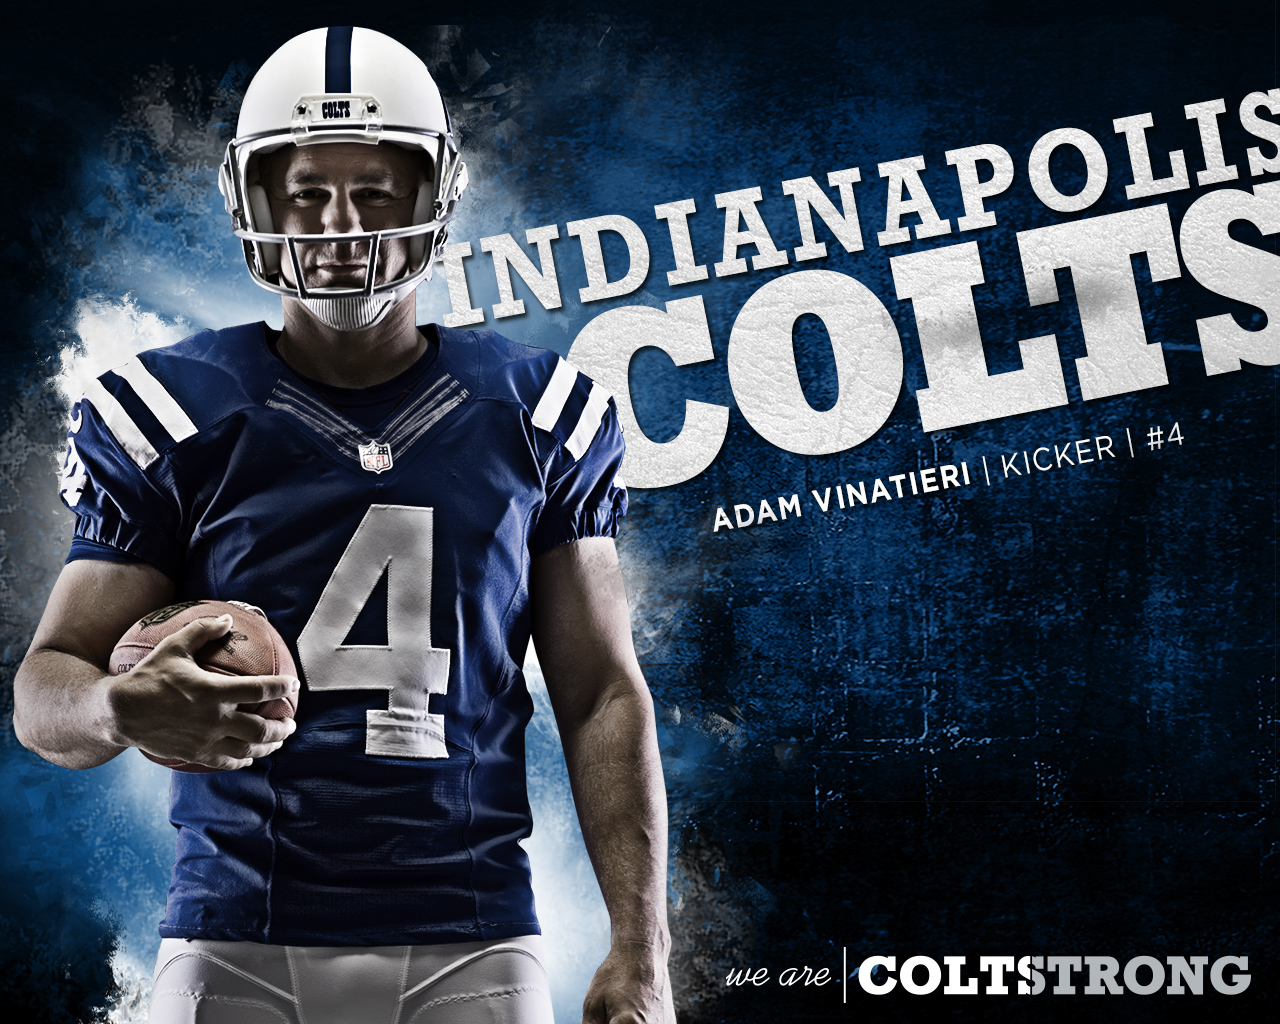 Coltscom COLTSTRONG Wallpapers 1280x1024